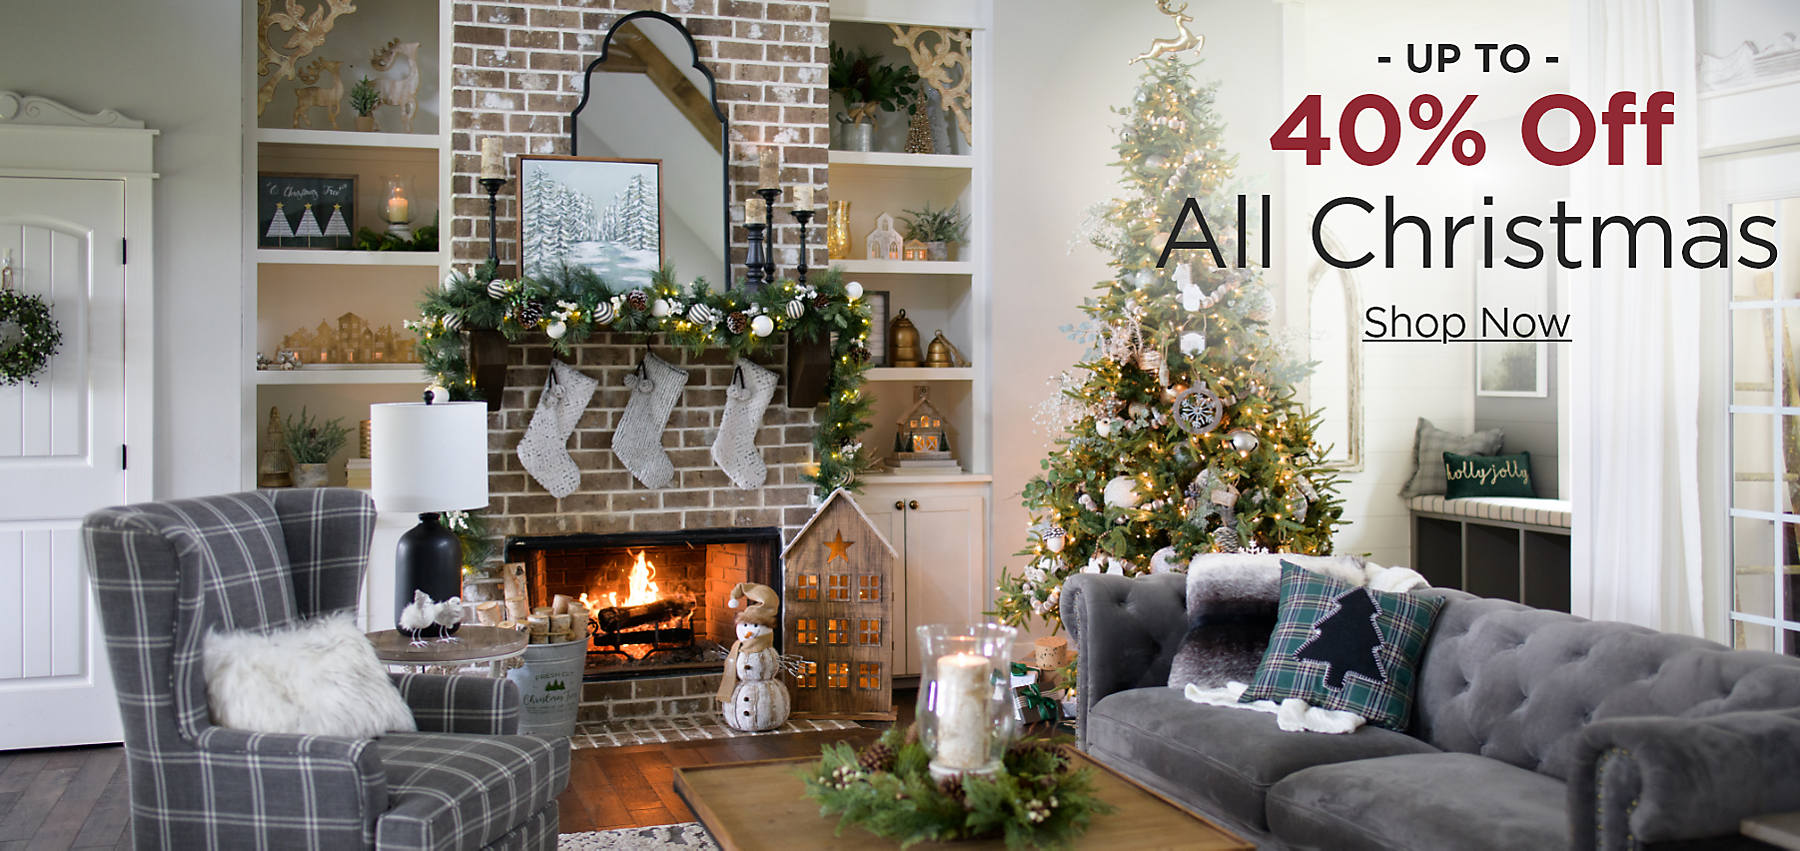 Up to 40% OFF all Christmas Shop Now